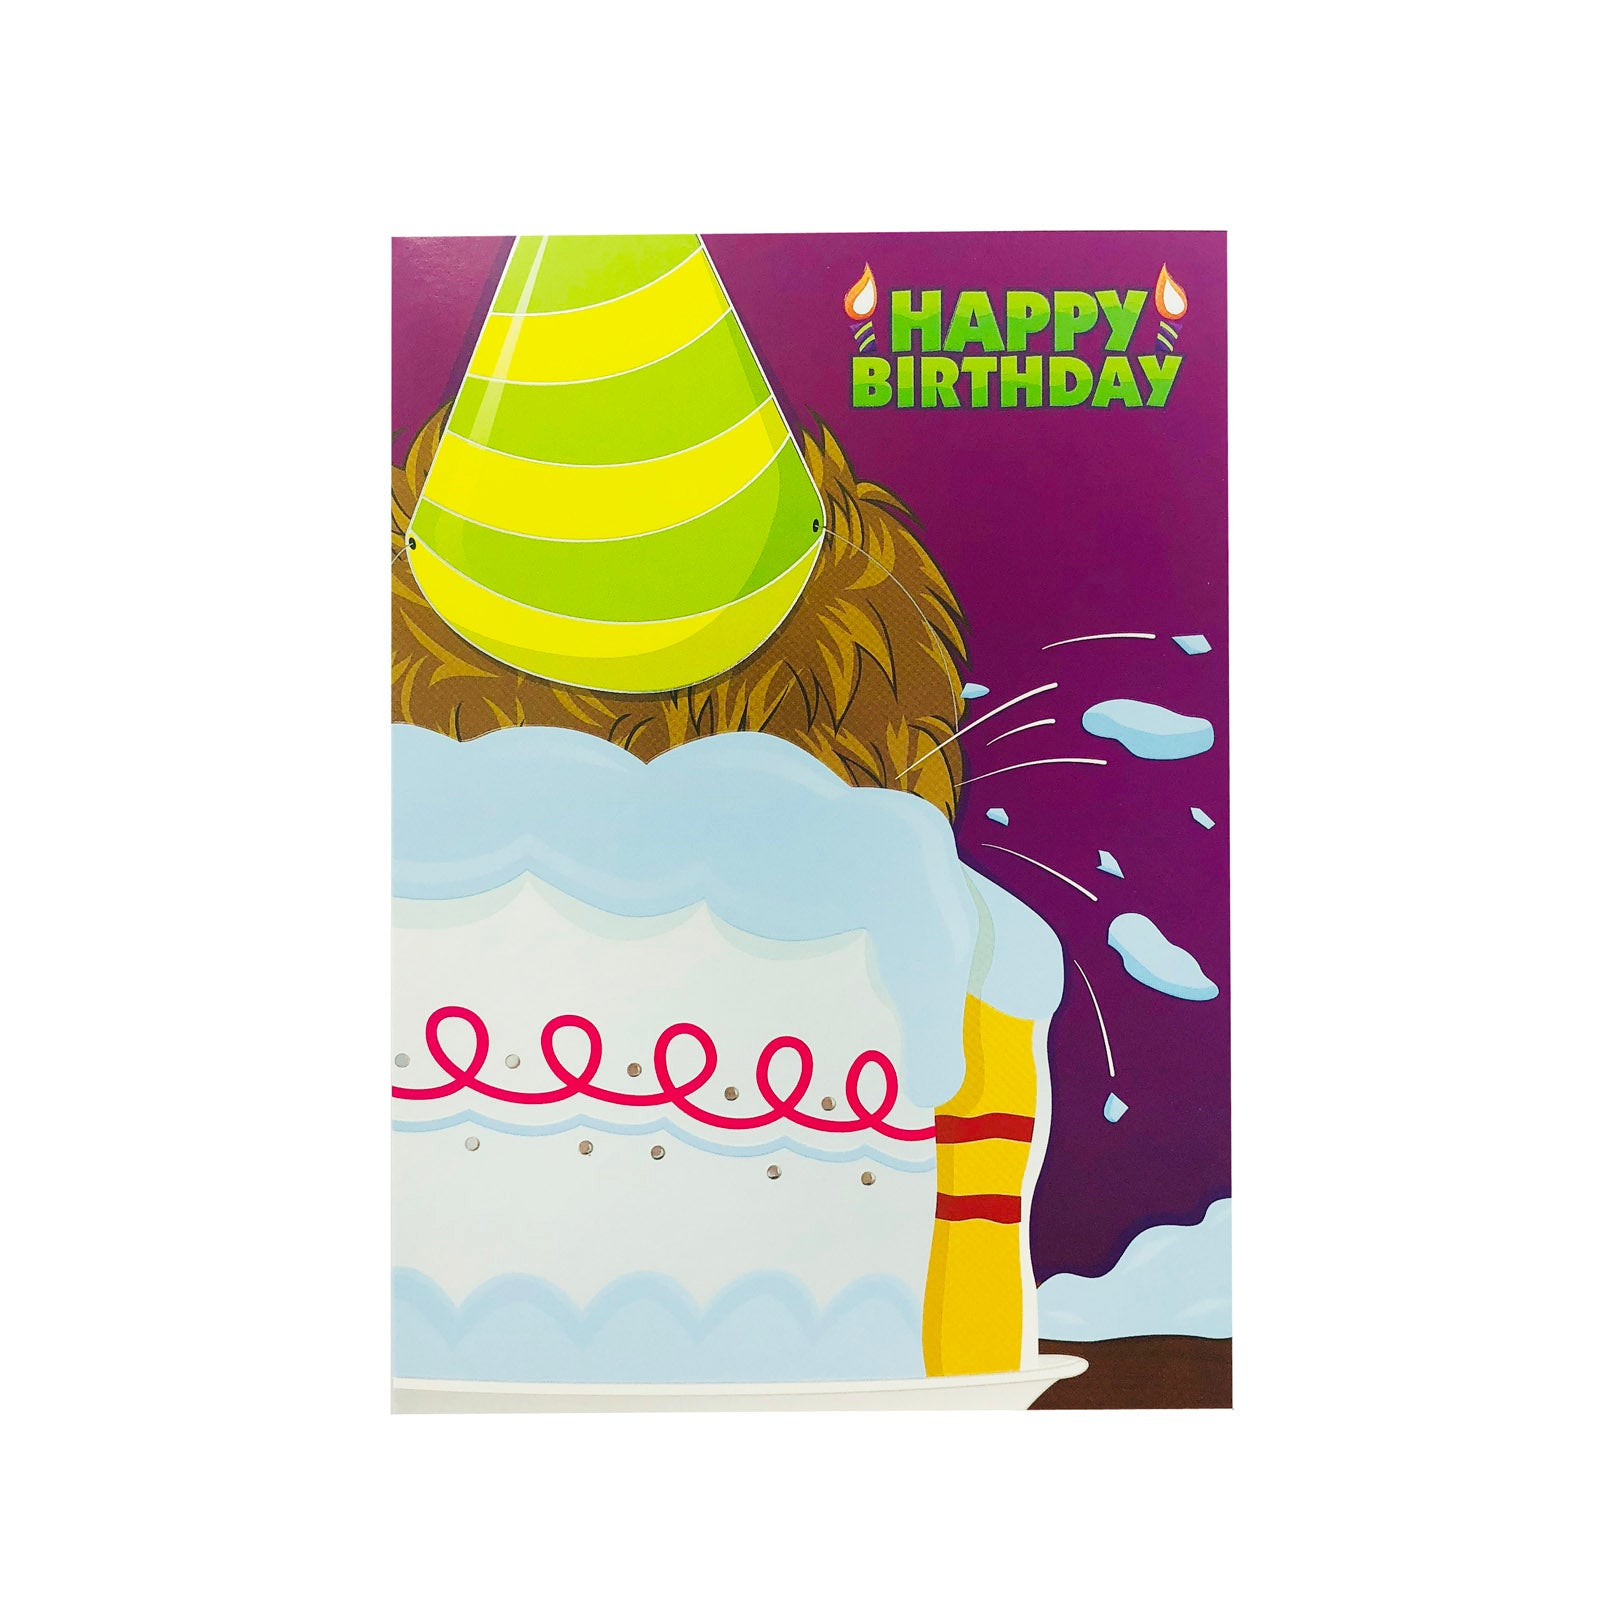 Designer Greetings Birthday Card - Happy Birthday - Cakes